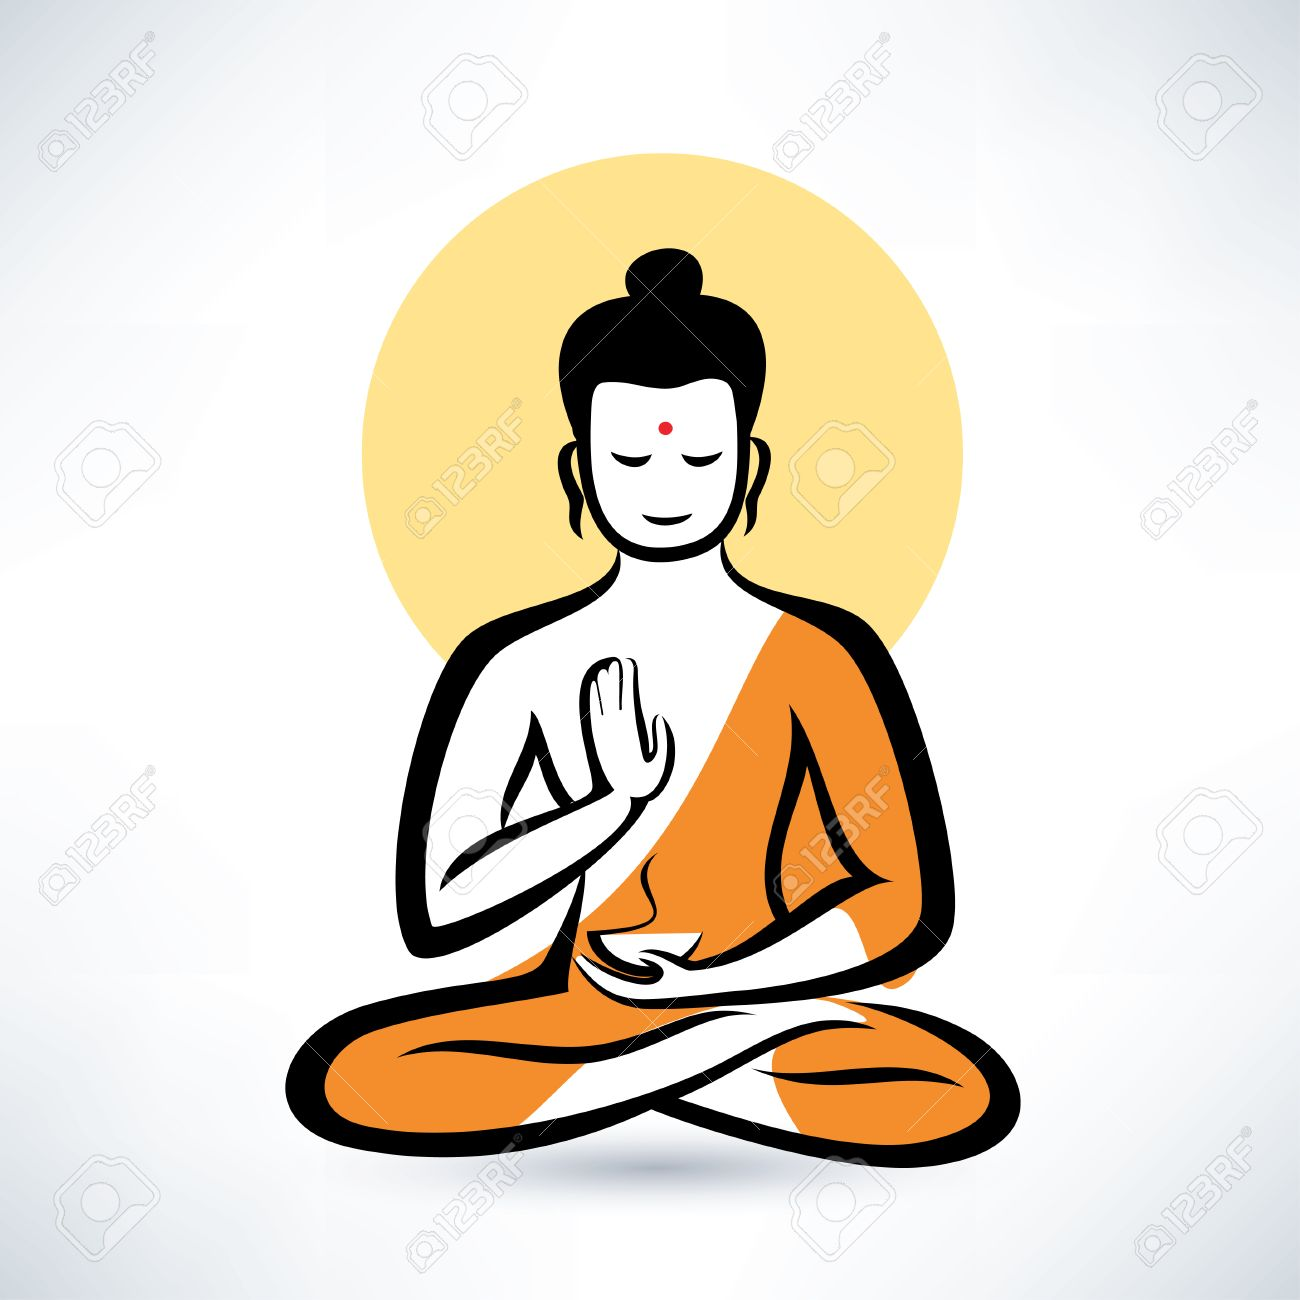 buddha vector symbol royalty free cliparts vectors and stock rh 123rf com buddha vector png buddha vector art